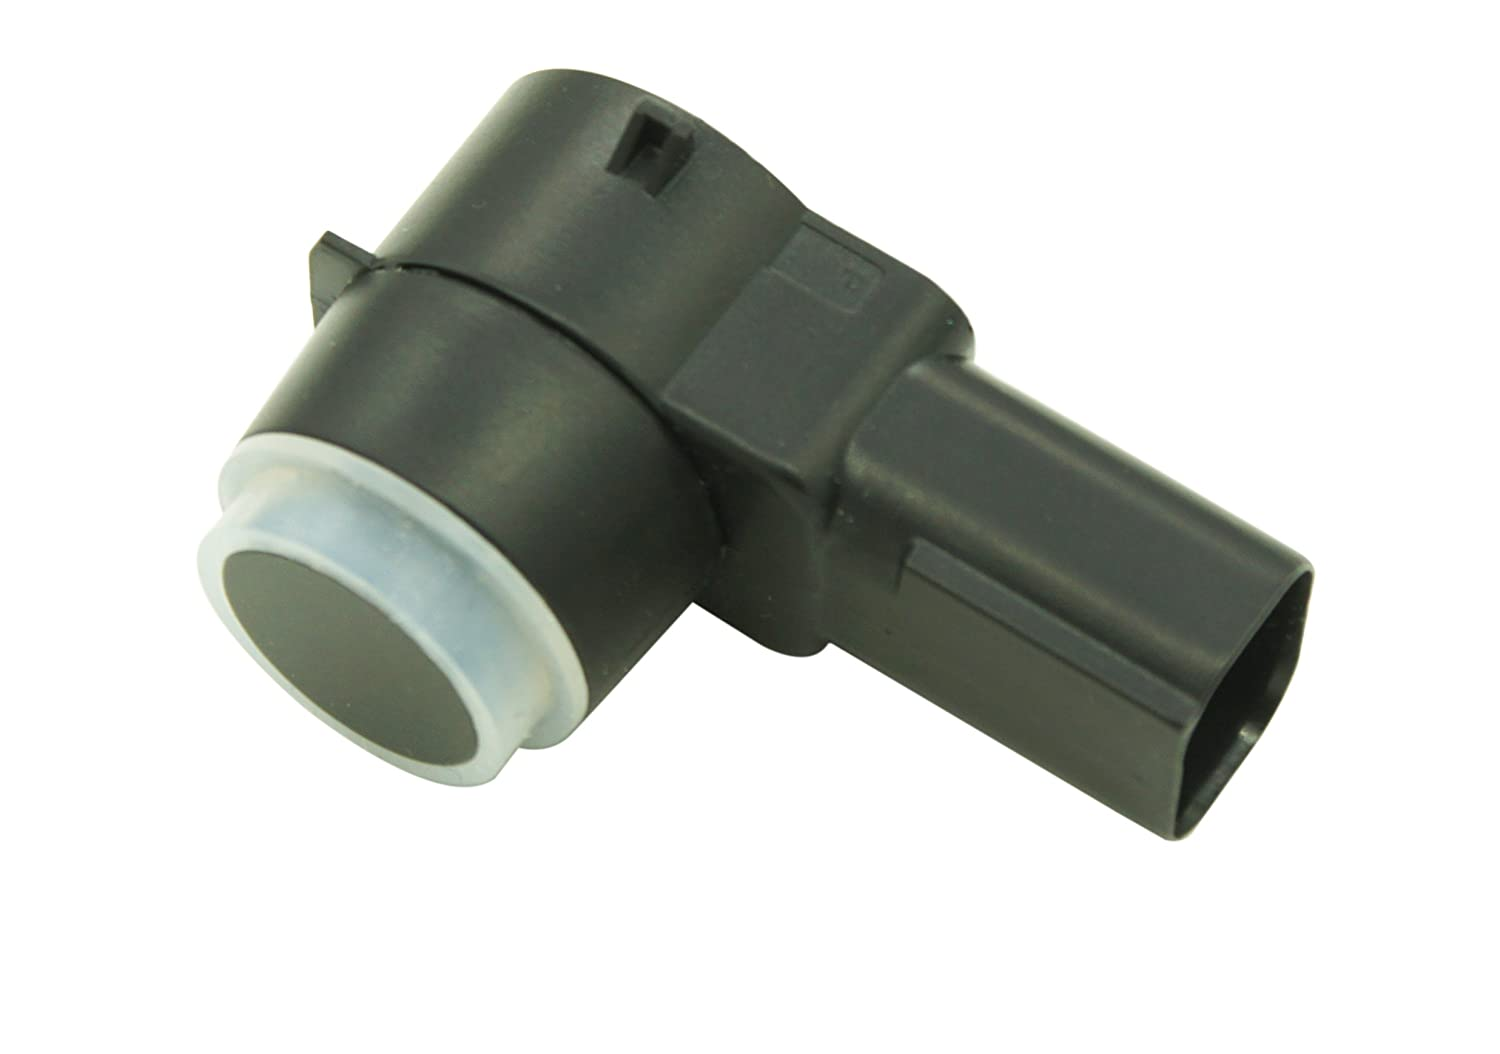 Electronicx Auto PDC Parksensor Ultraschall Sensor Parktronic Parksensoren Parkhilfe Parkassistent 9675202477F4